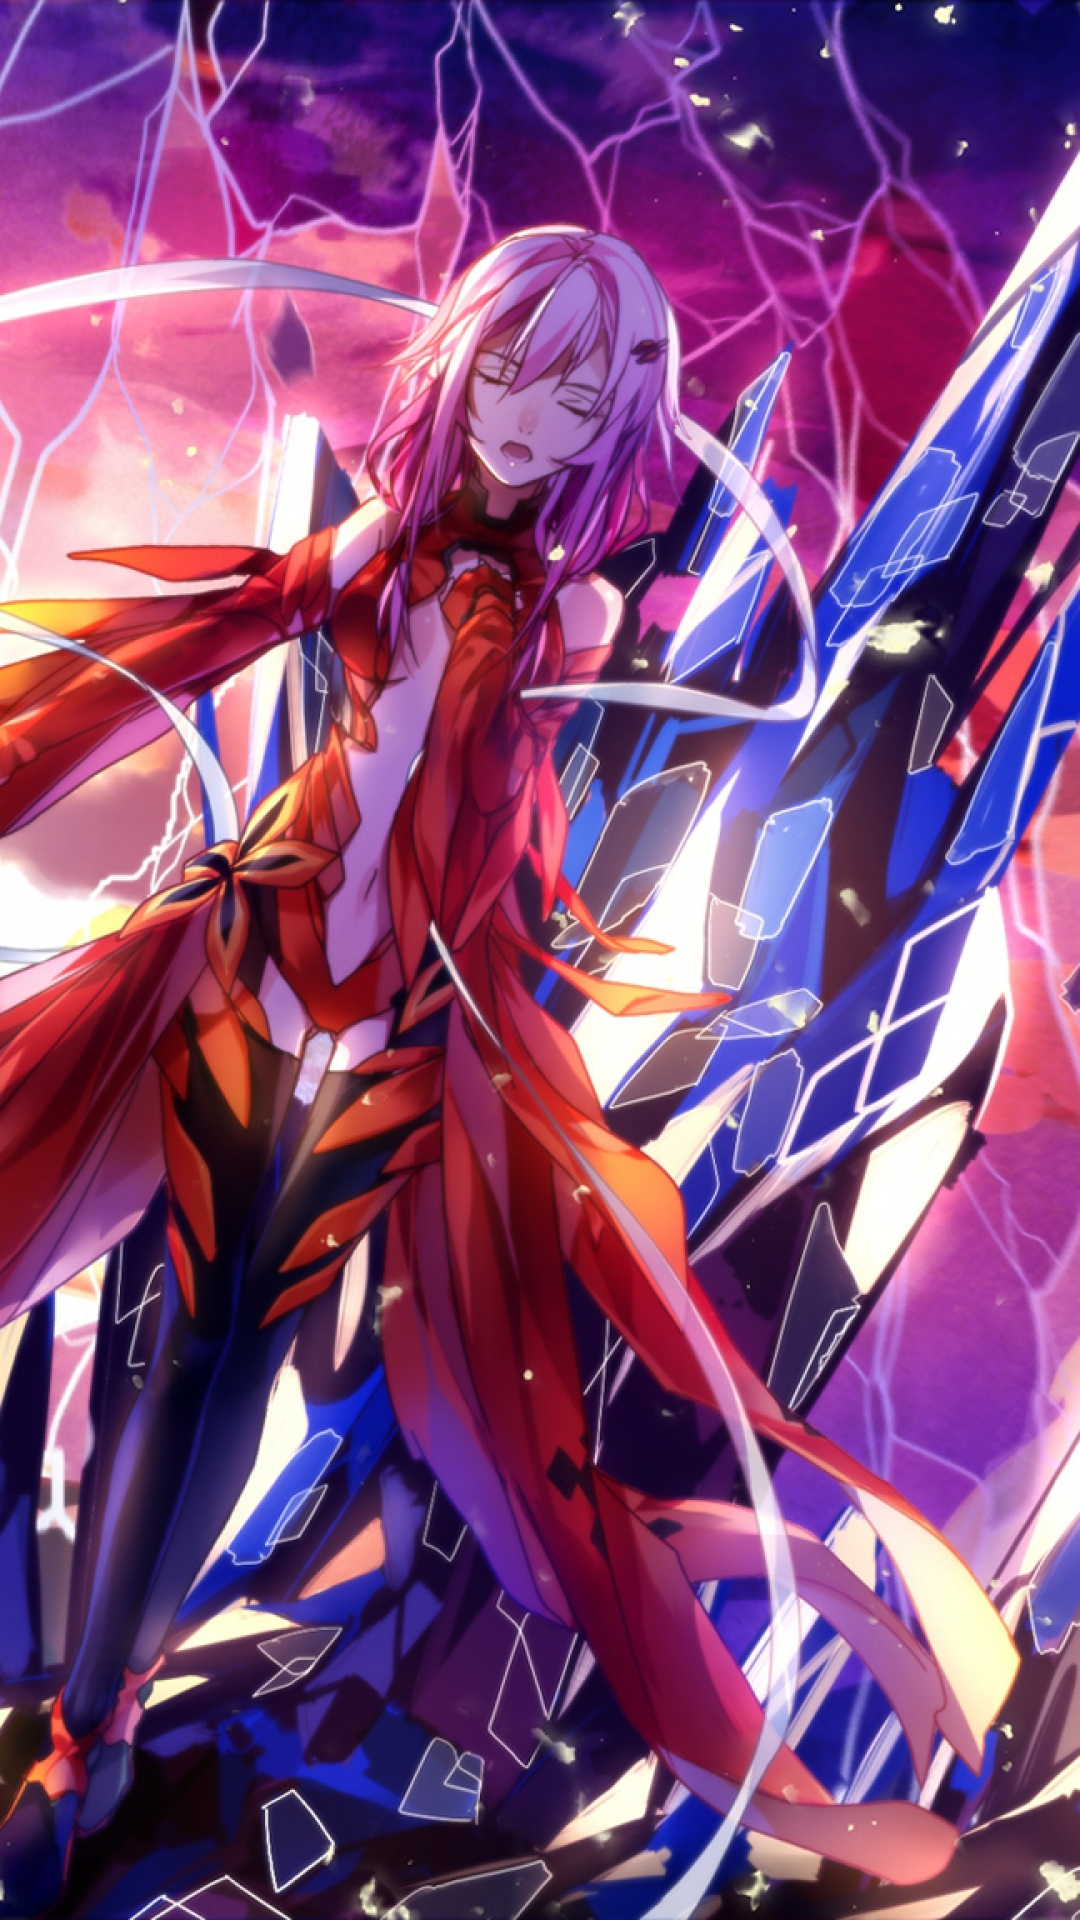 Download Wallpaper 1080x1920 Guilty crown Anime Inori Sony Xperia Z1 1080x1920